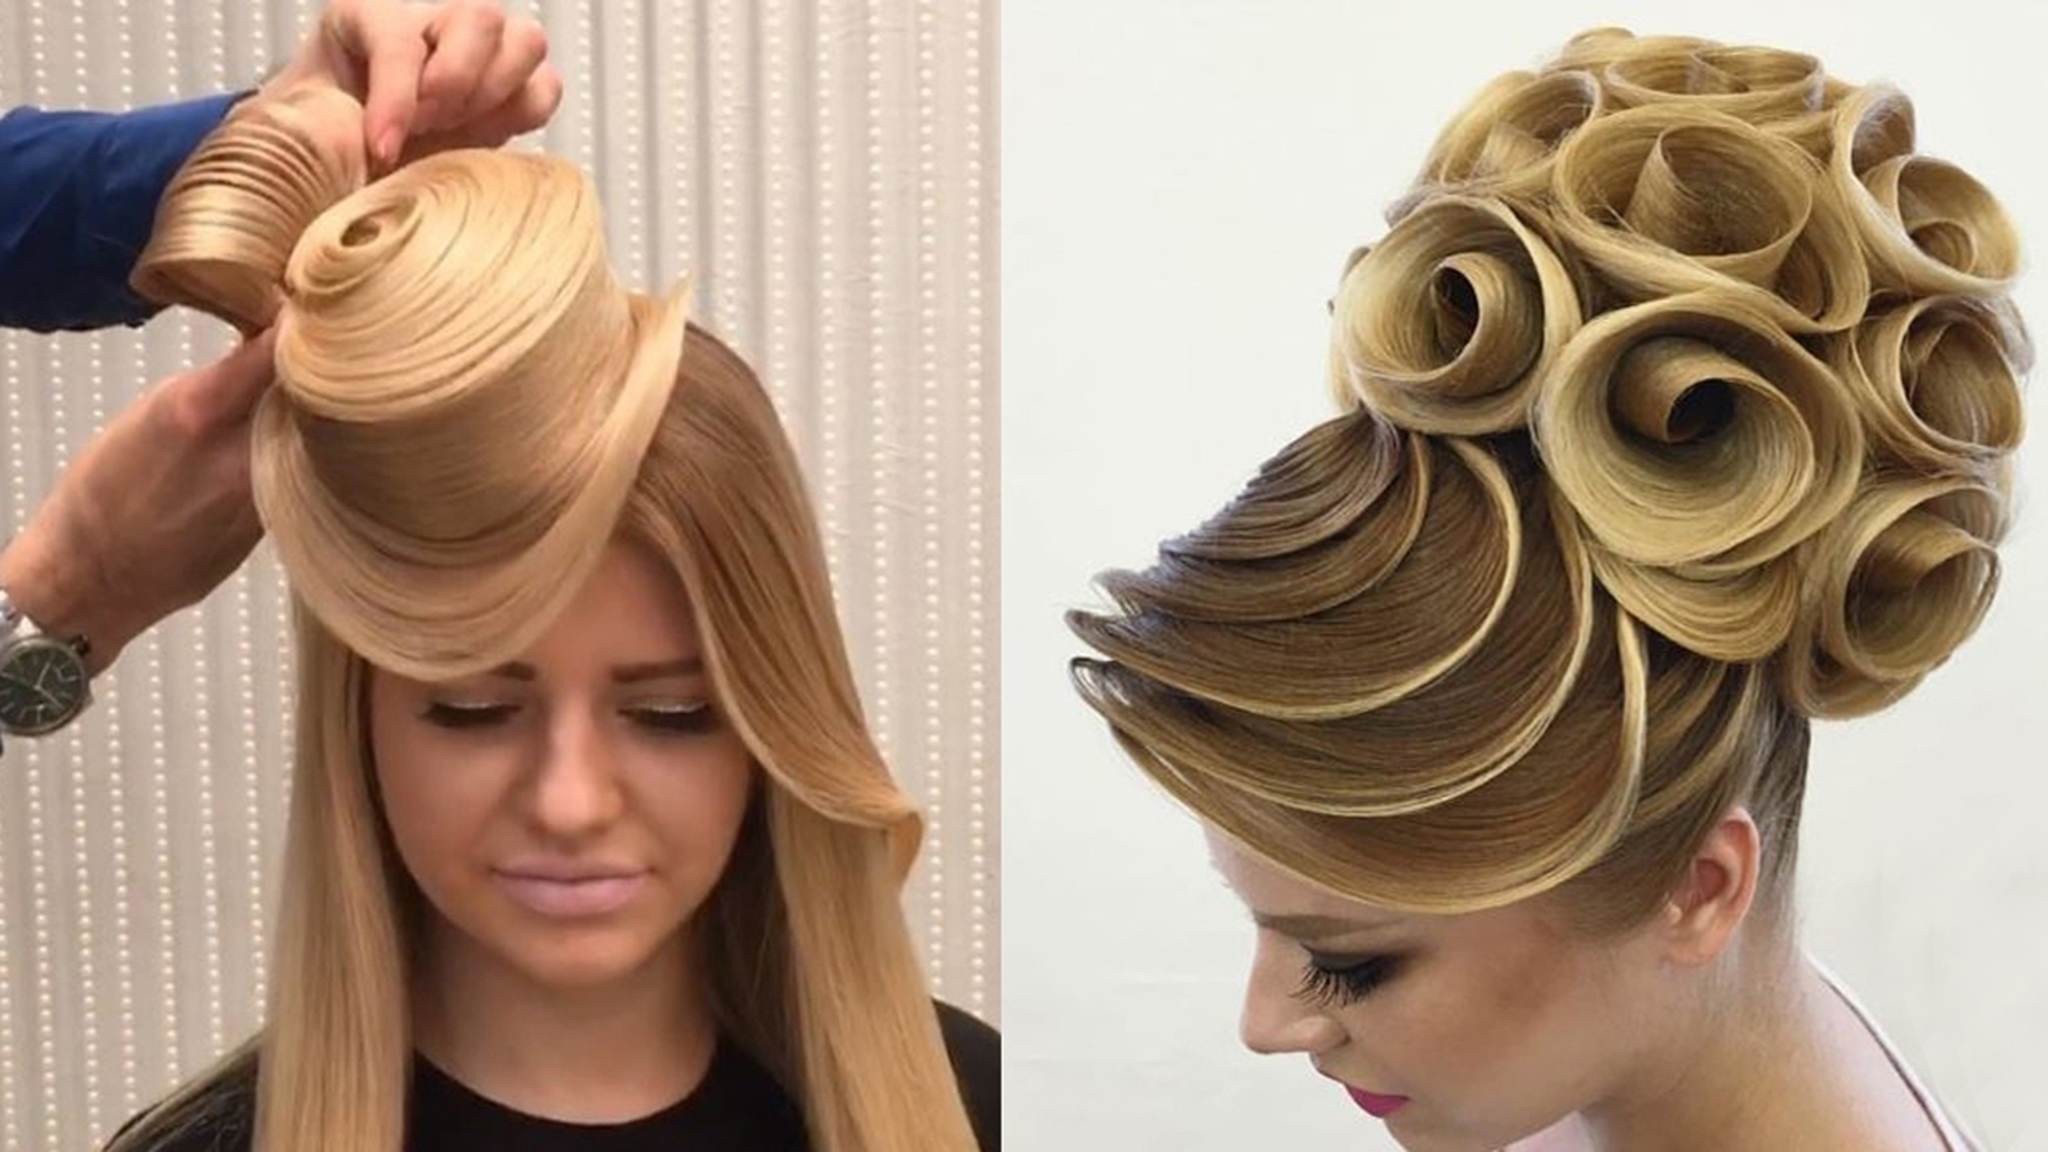 12 Of The Most Stunning Hair Styles Ever Created